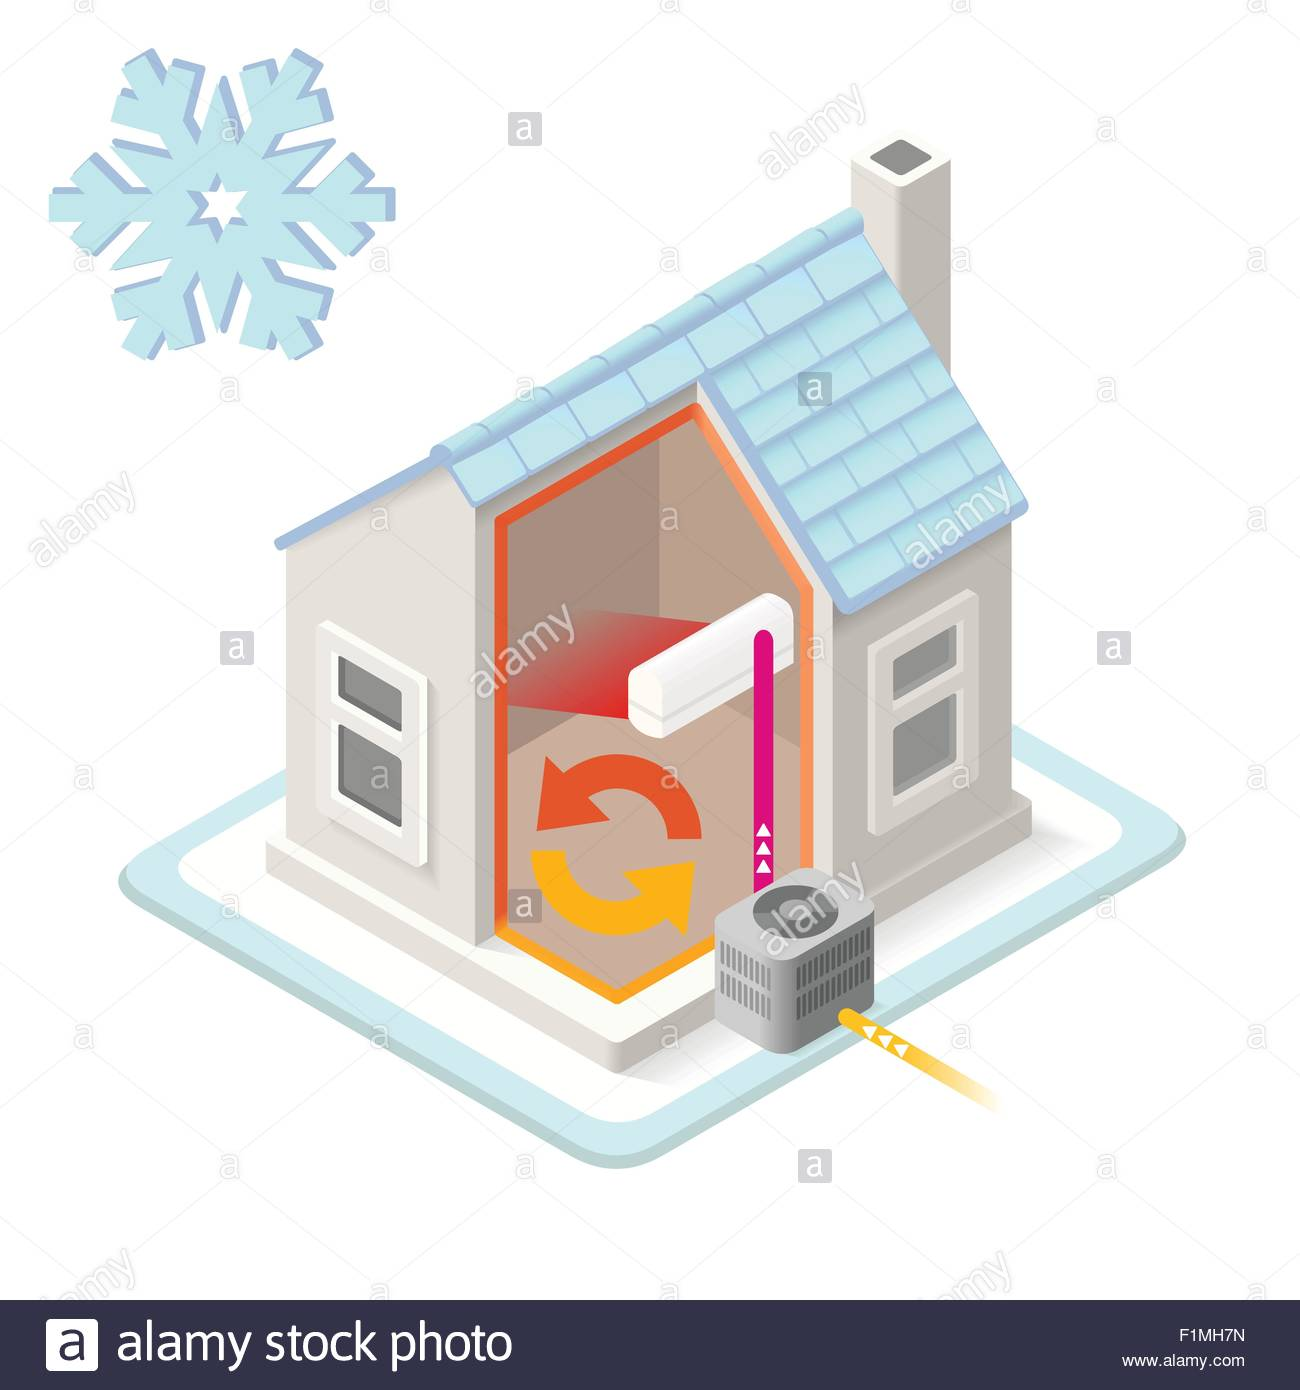 Heat Pump House Heating System Infographic Icon Concept. Isometric 3d  Soften Colors Elements. Air Conditioner Heat Providing Cha